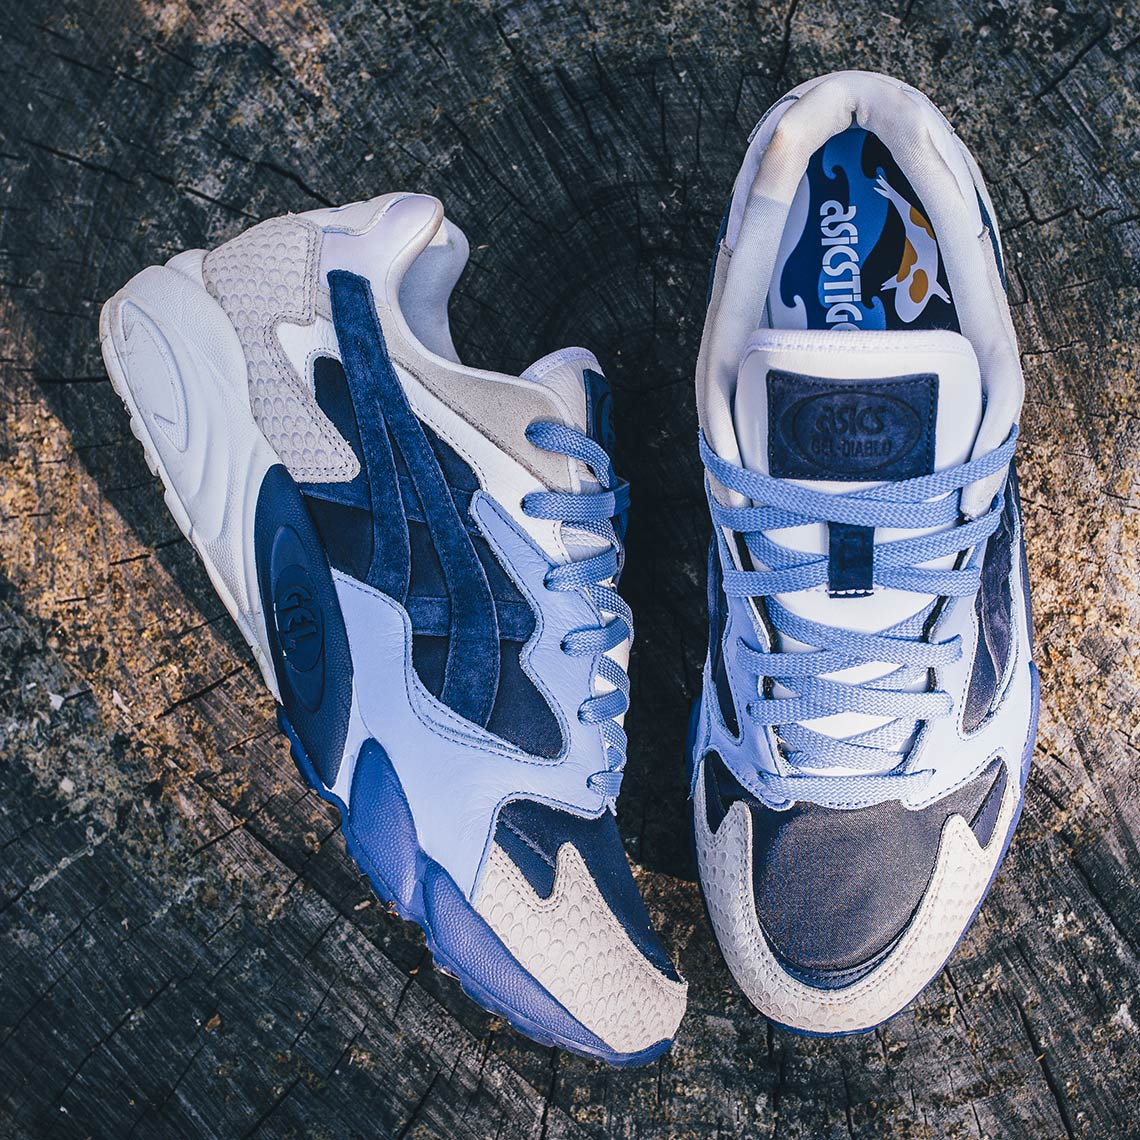 88eab8373f28 Foot Locker + ASICSTIGER + Pensole GEL-DIABLO Once Upon A Time In ...